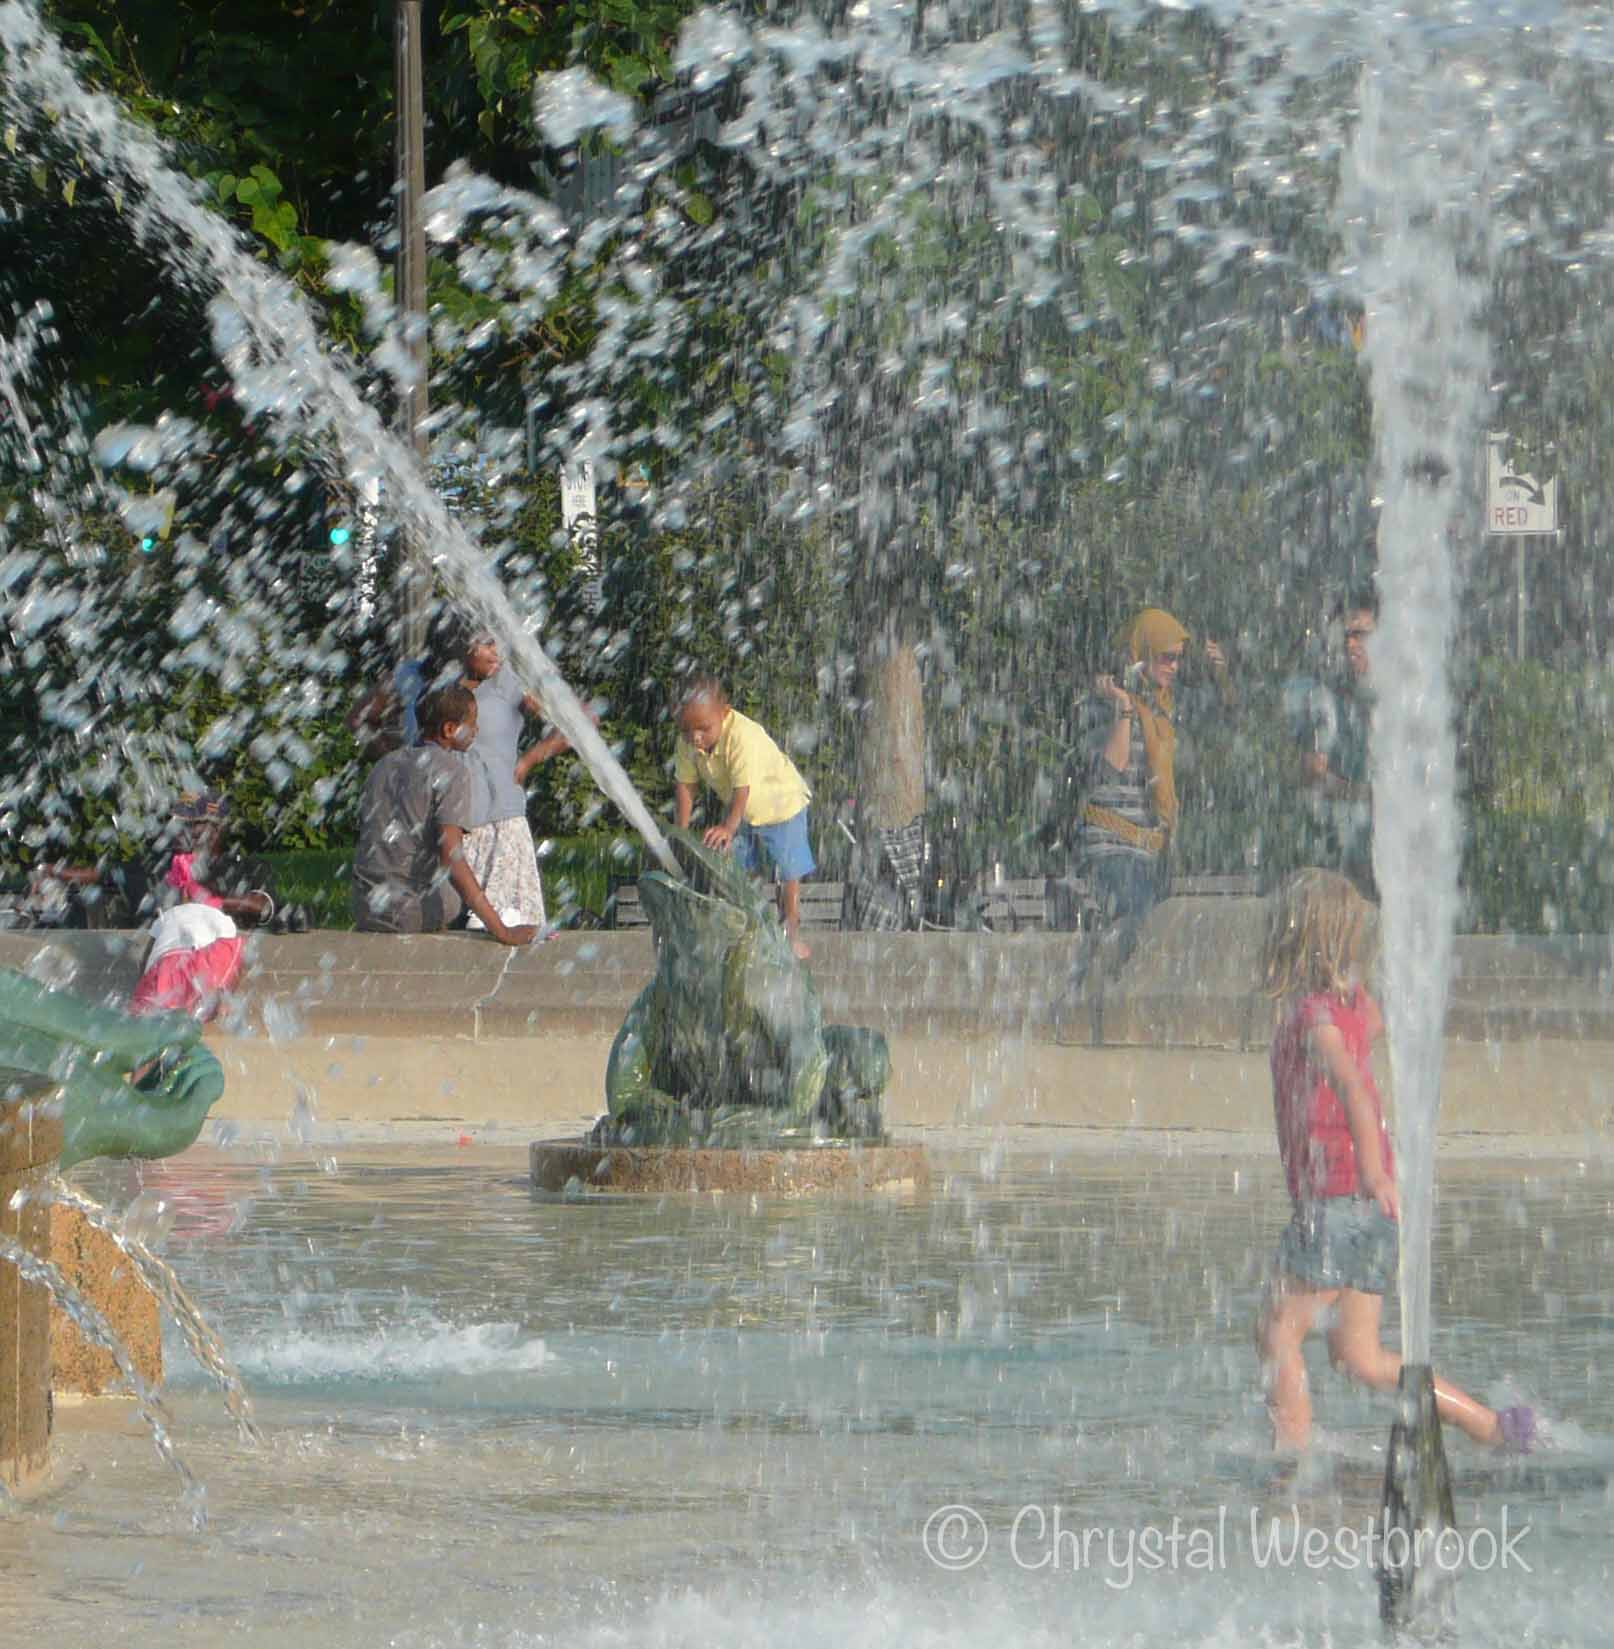 [IMAGE] Children playing in a fountain